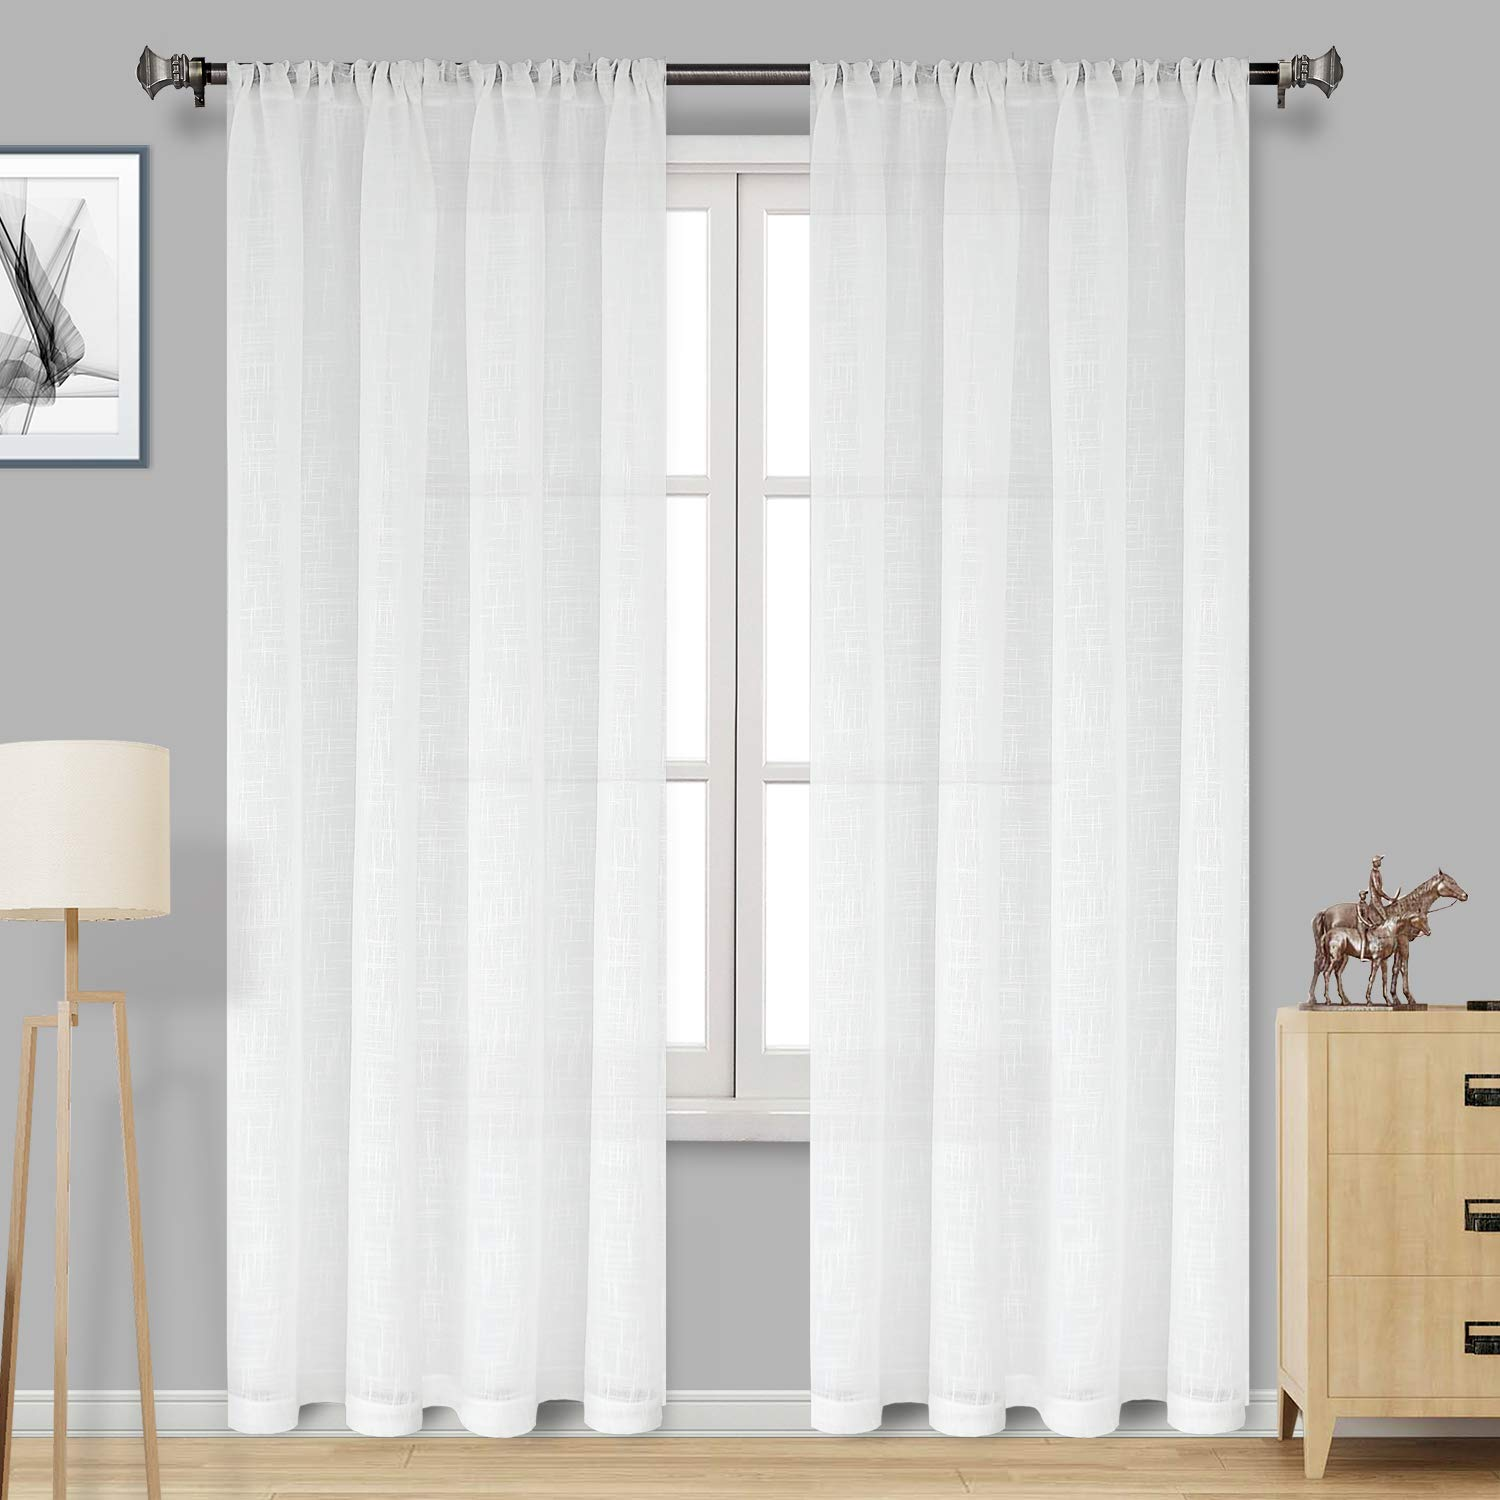 Amazon Com Dwcn White Faux Linen Sheer Curtains Rod Pocket